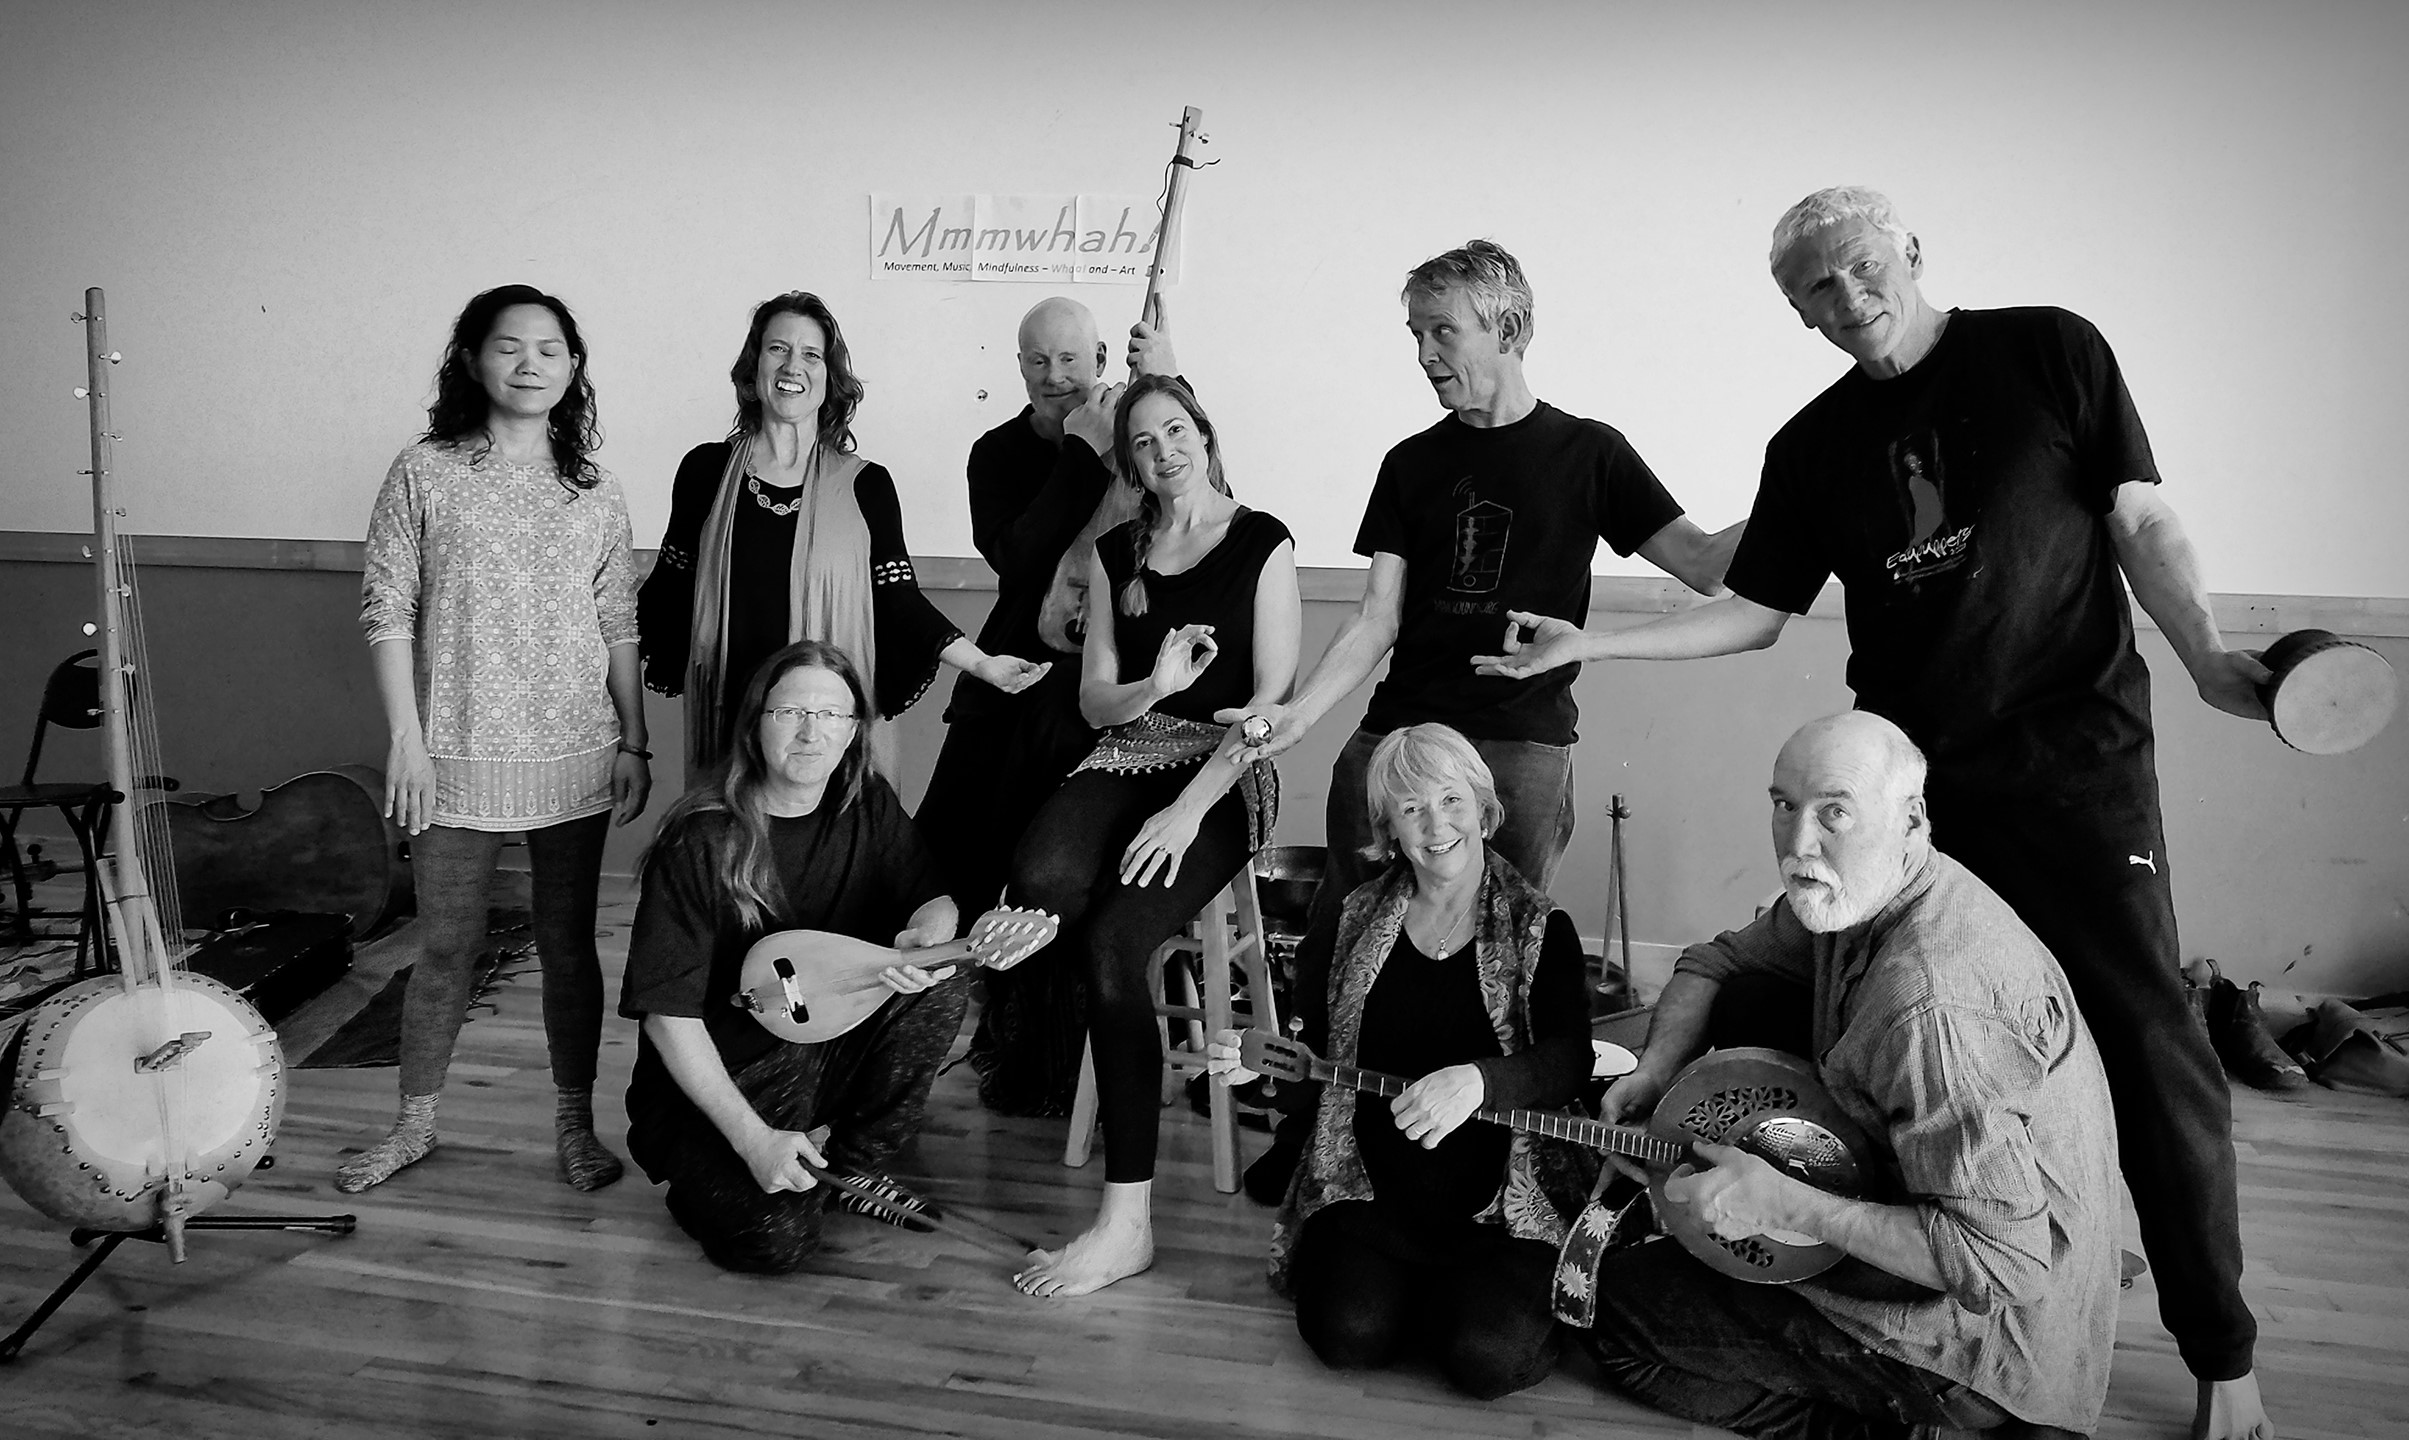 Summer of Discovery: Improvisational Music & Movement Workshop with Members of the Mmmwhah! Ensemble